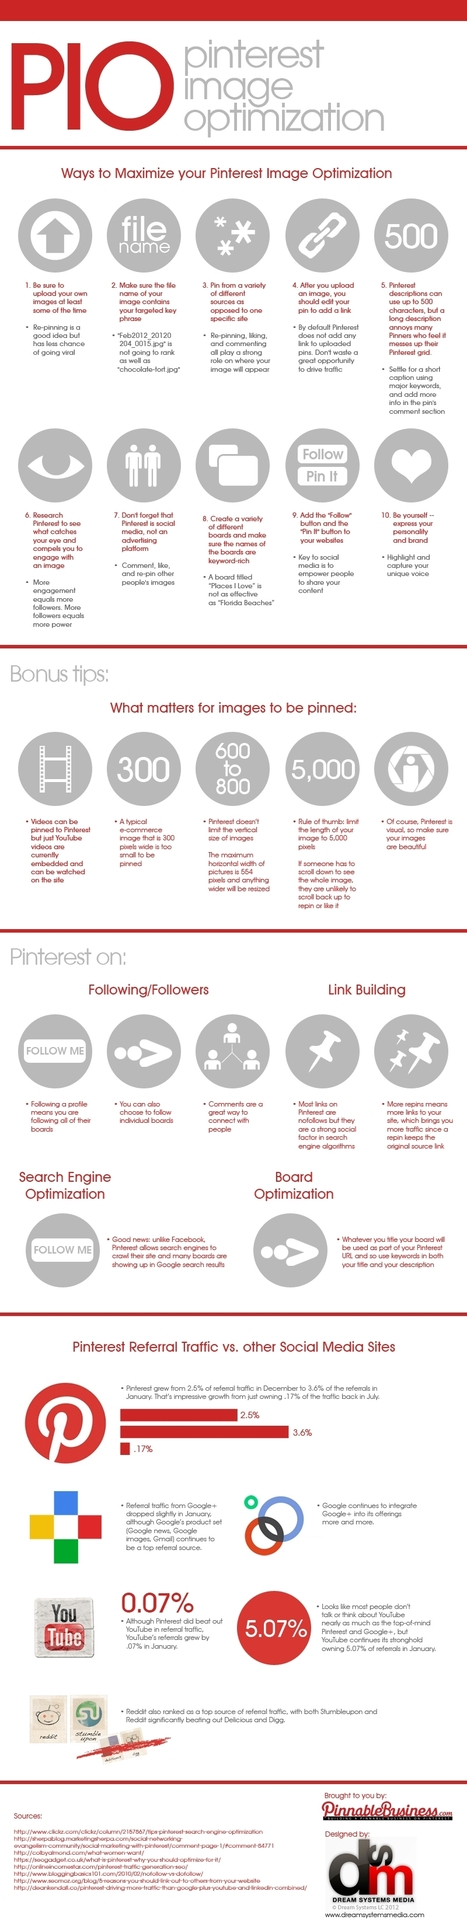 Pinterest Image Optimization [Infographic] | ALBERTO CORRERA - QUADRI E DIRIGENTI TURISMO IN ITALIA | Scoop.it